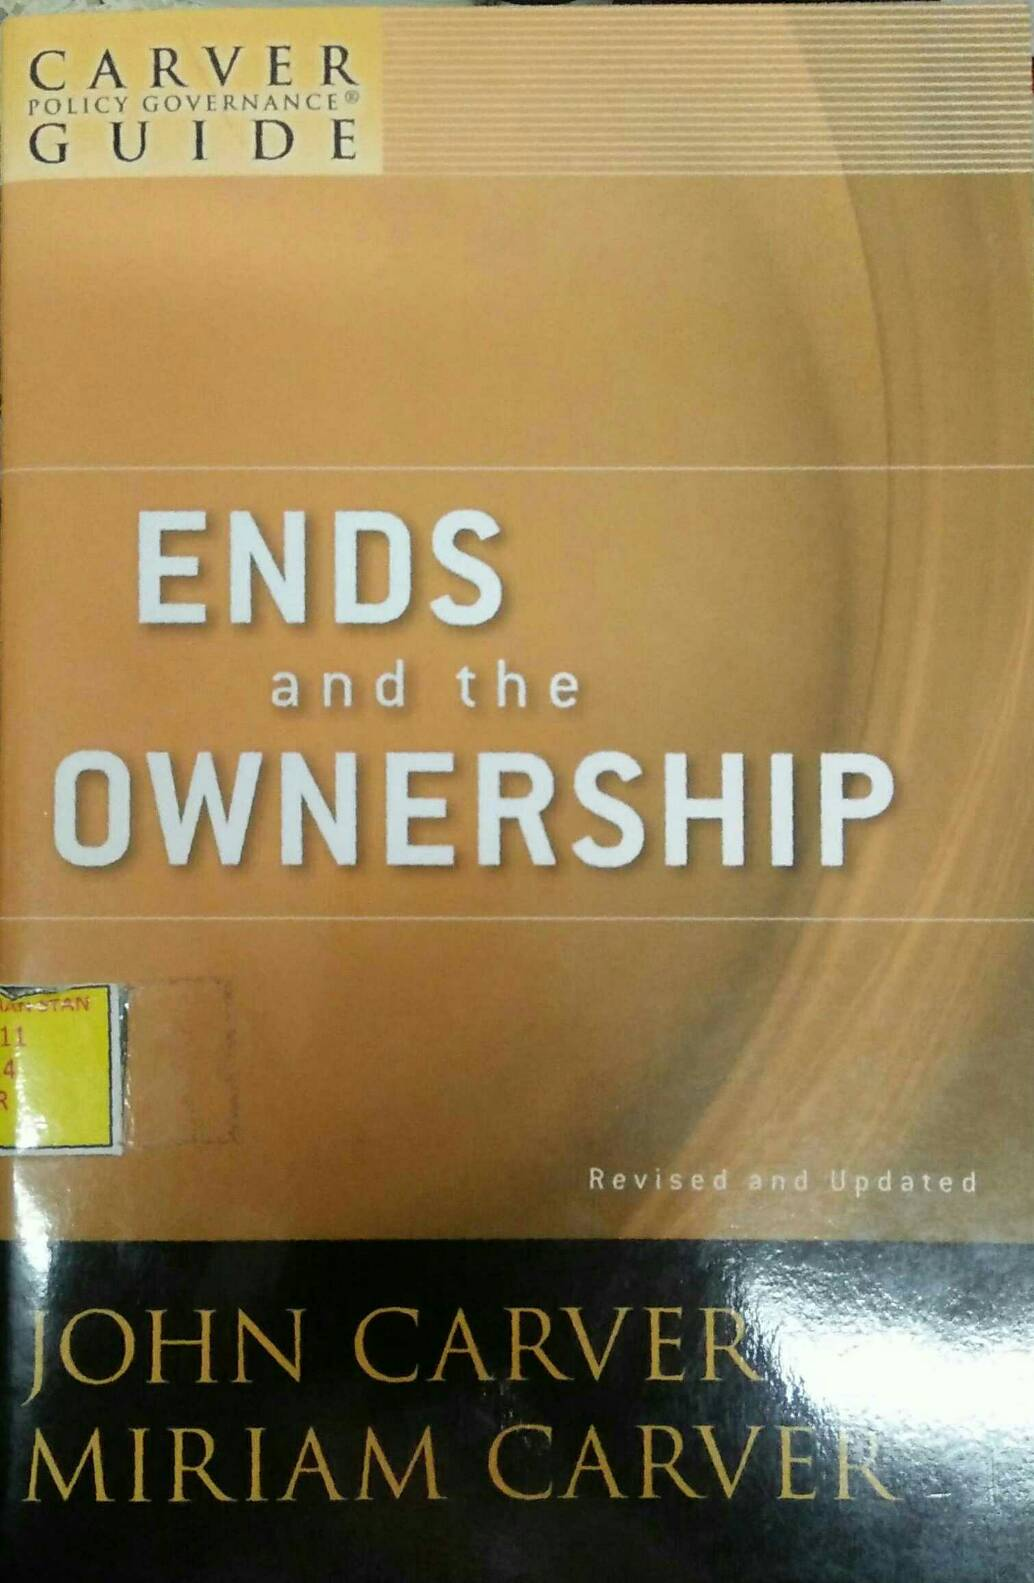 Ends and the ownership